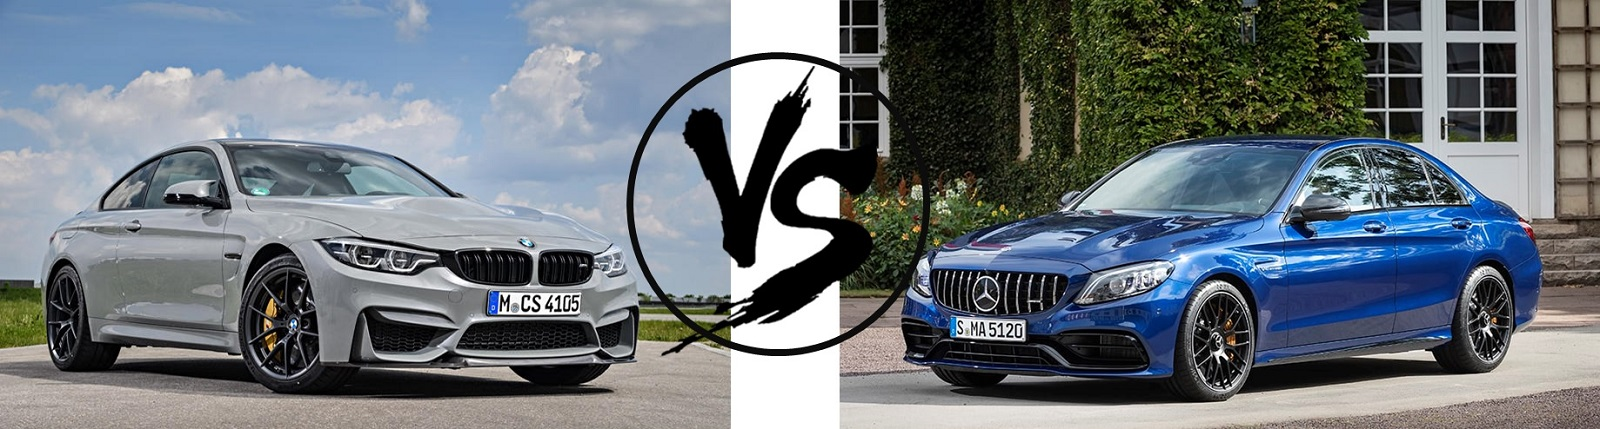 2020 BMW M4 vs 2020 Mercedes C63 AMG Features, Design and Performance